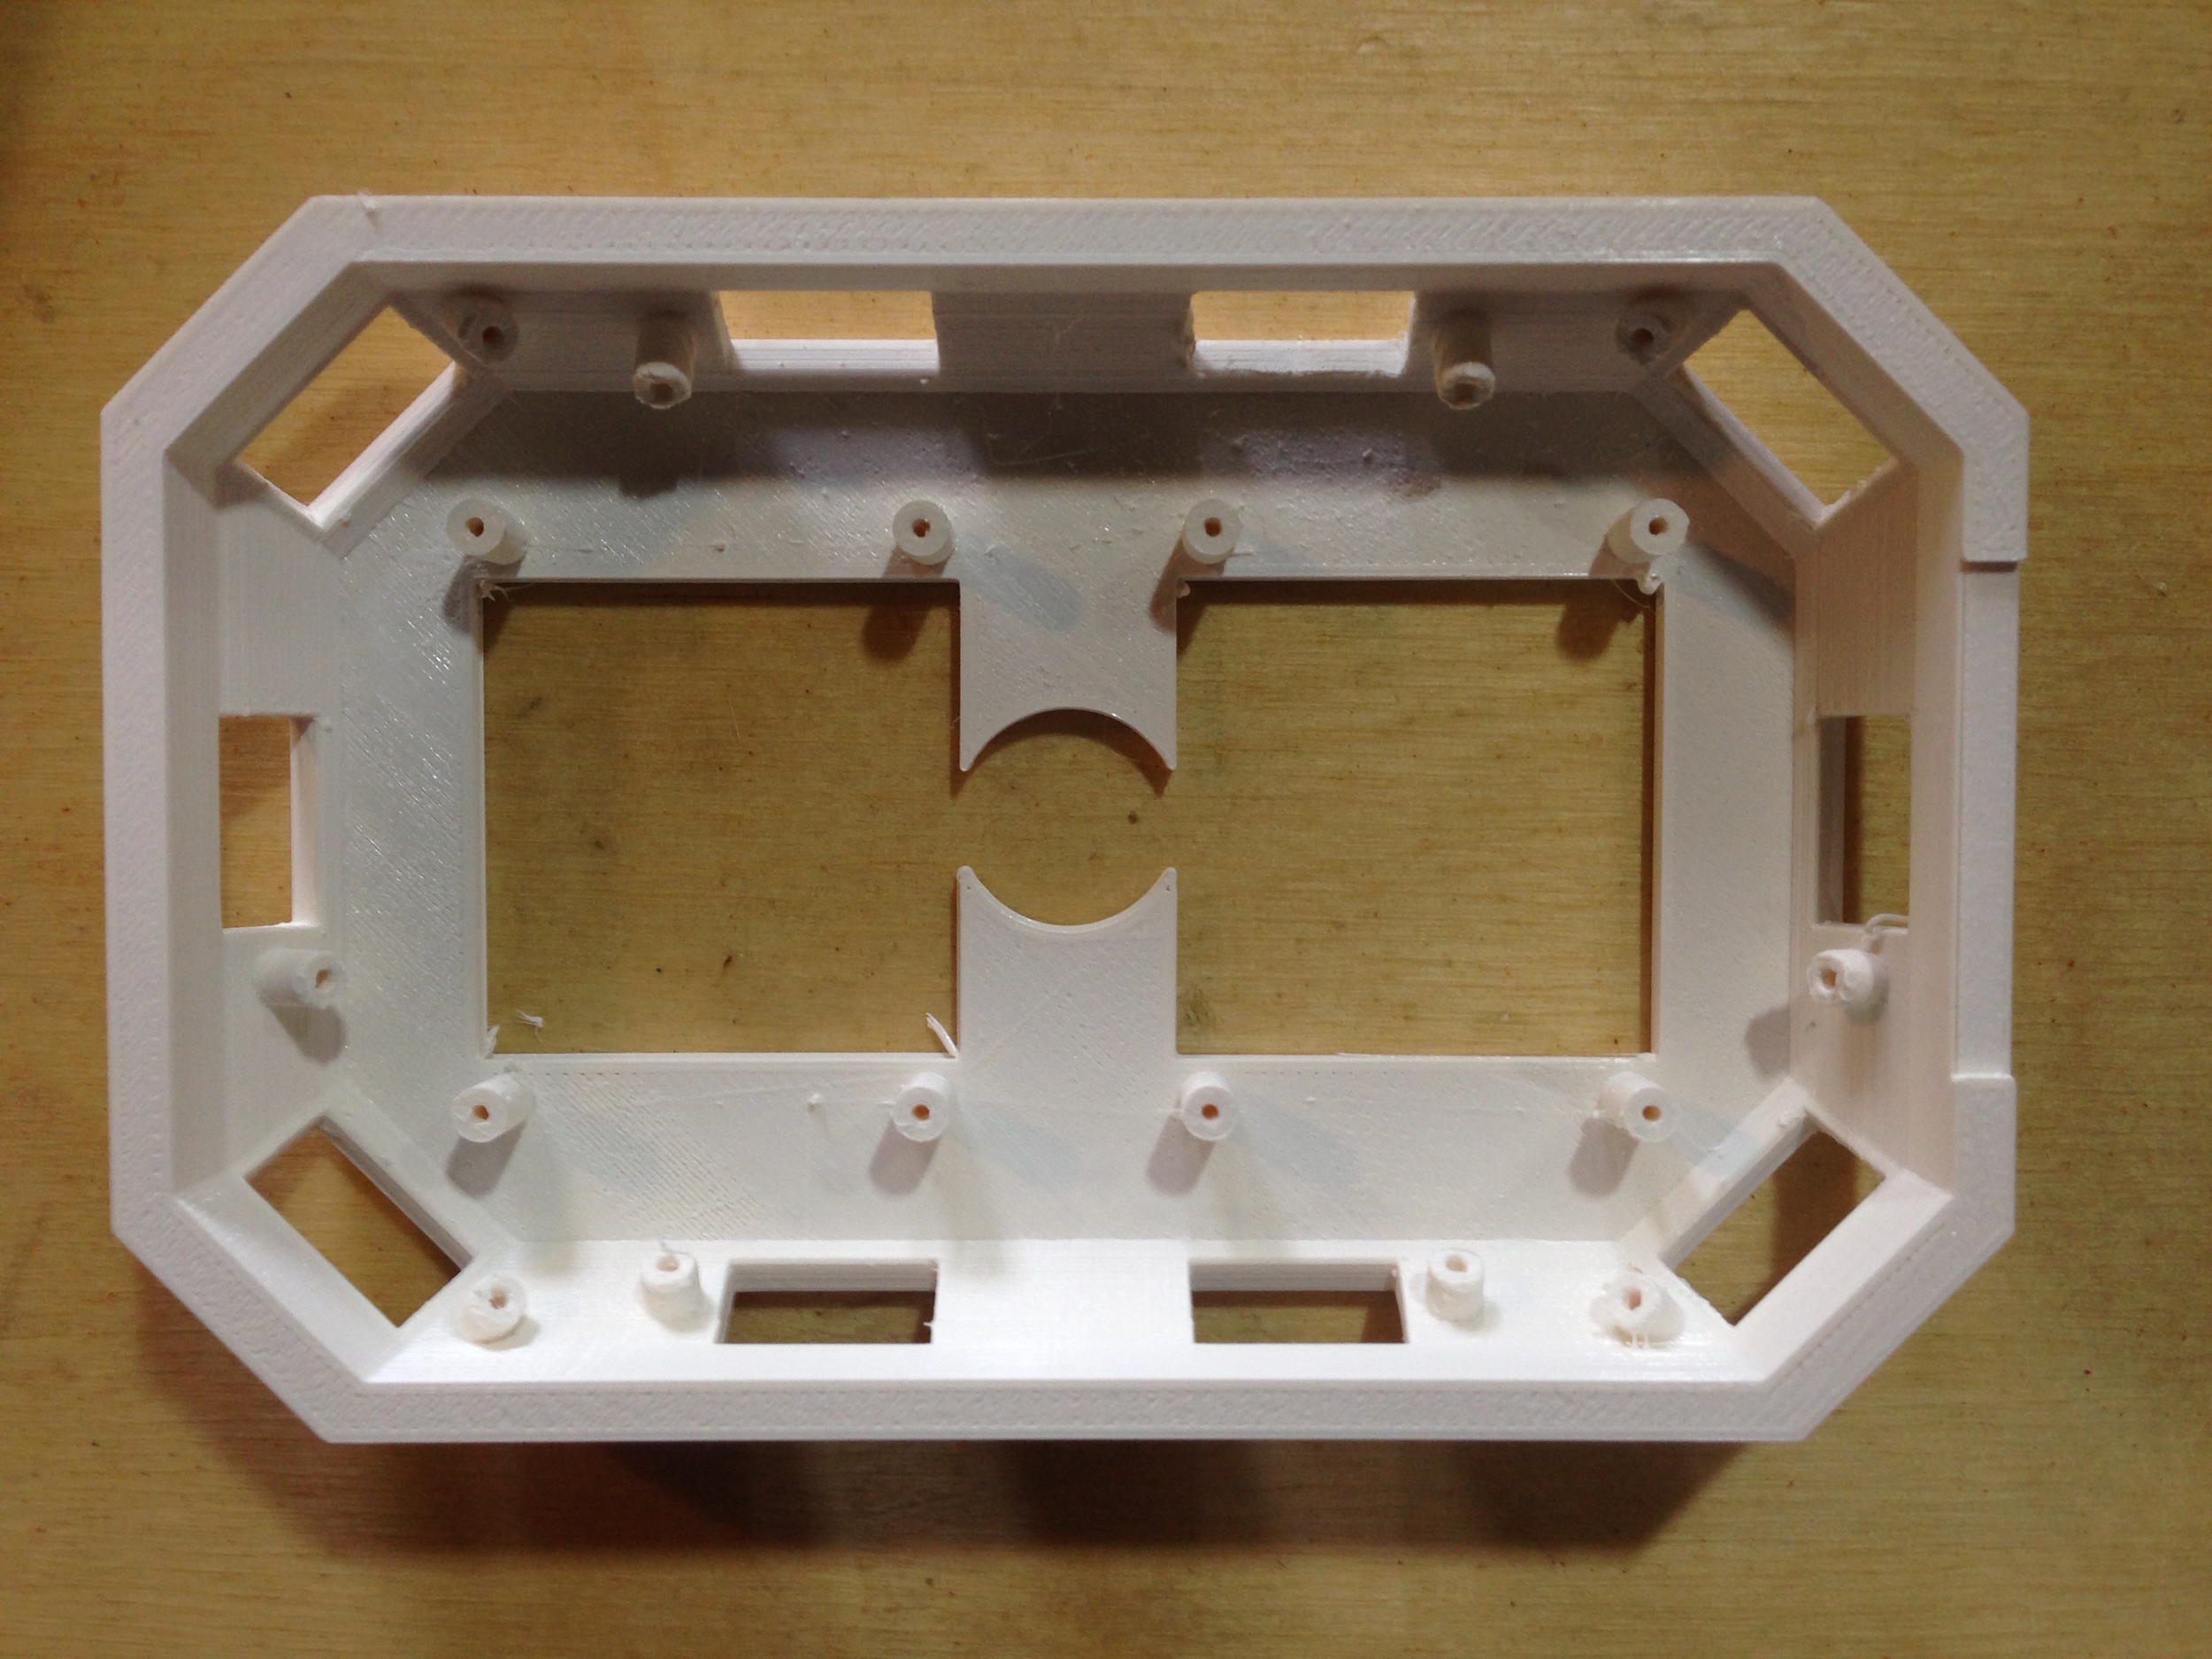 3D printed inner structure